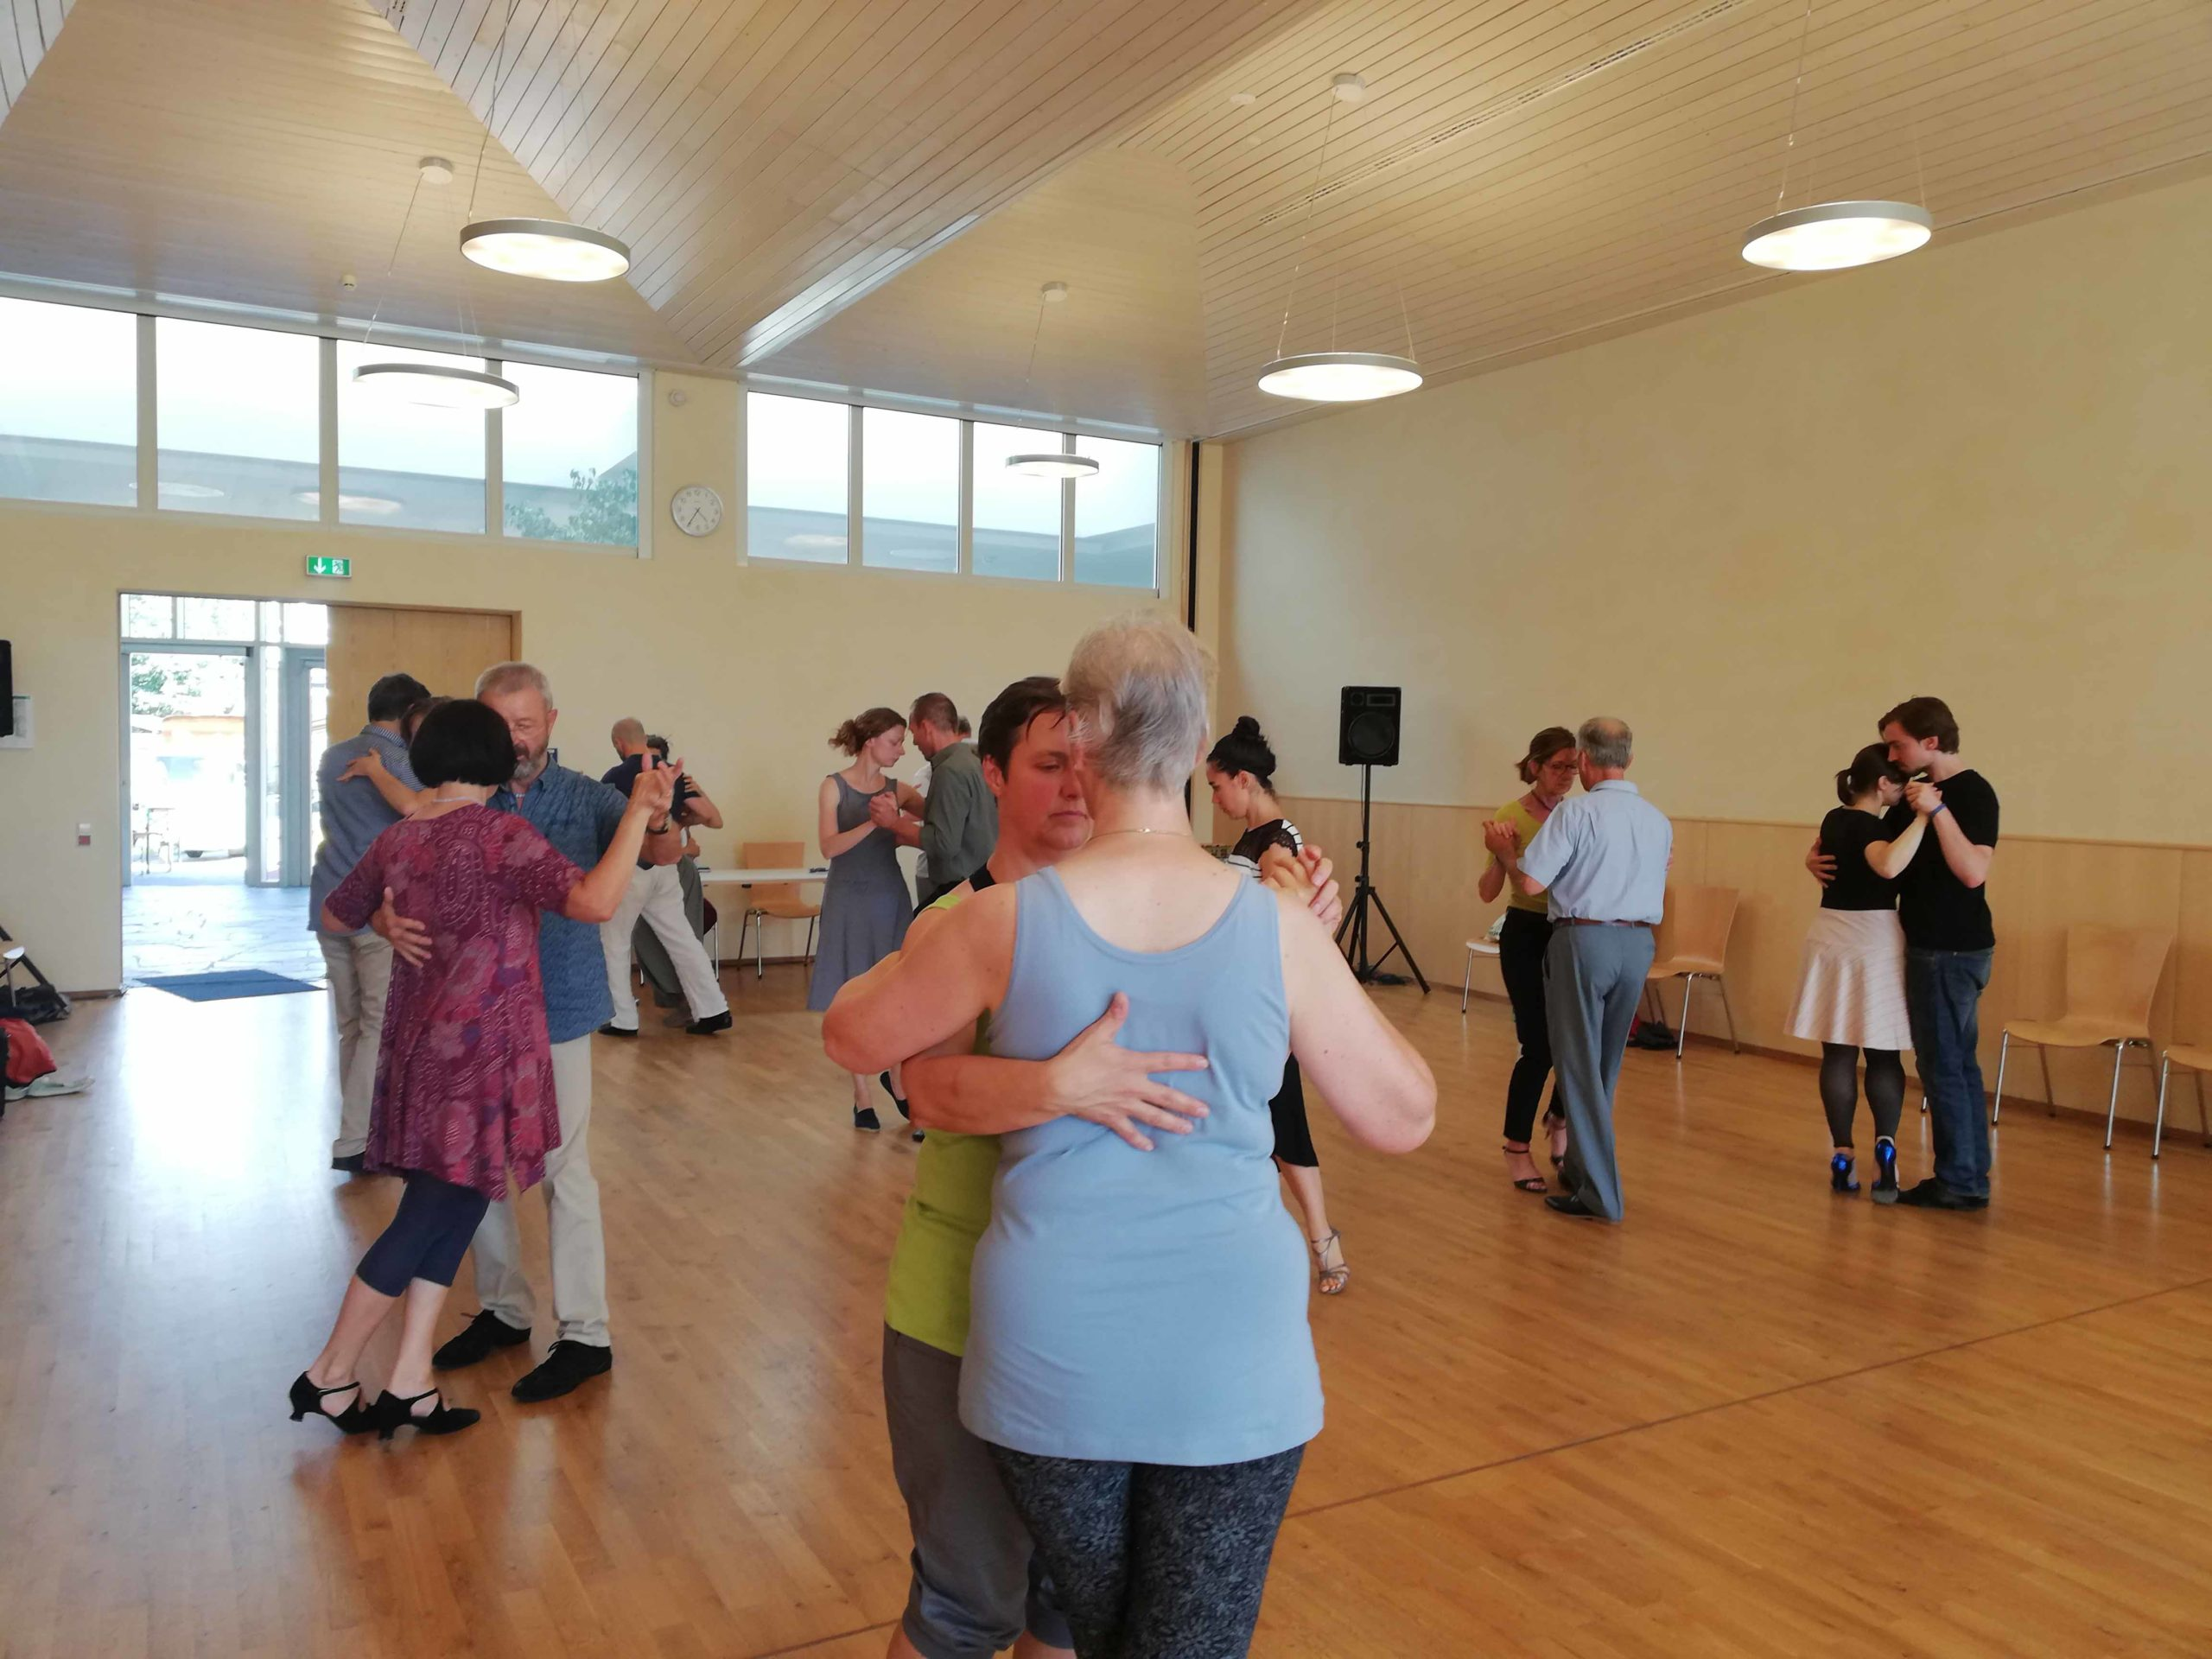 Tango Magie Festivalito in Freiburg 22nd to 24th of June 2018